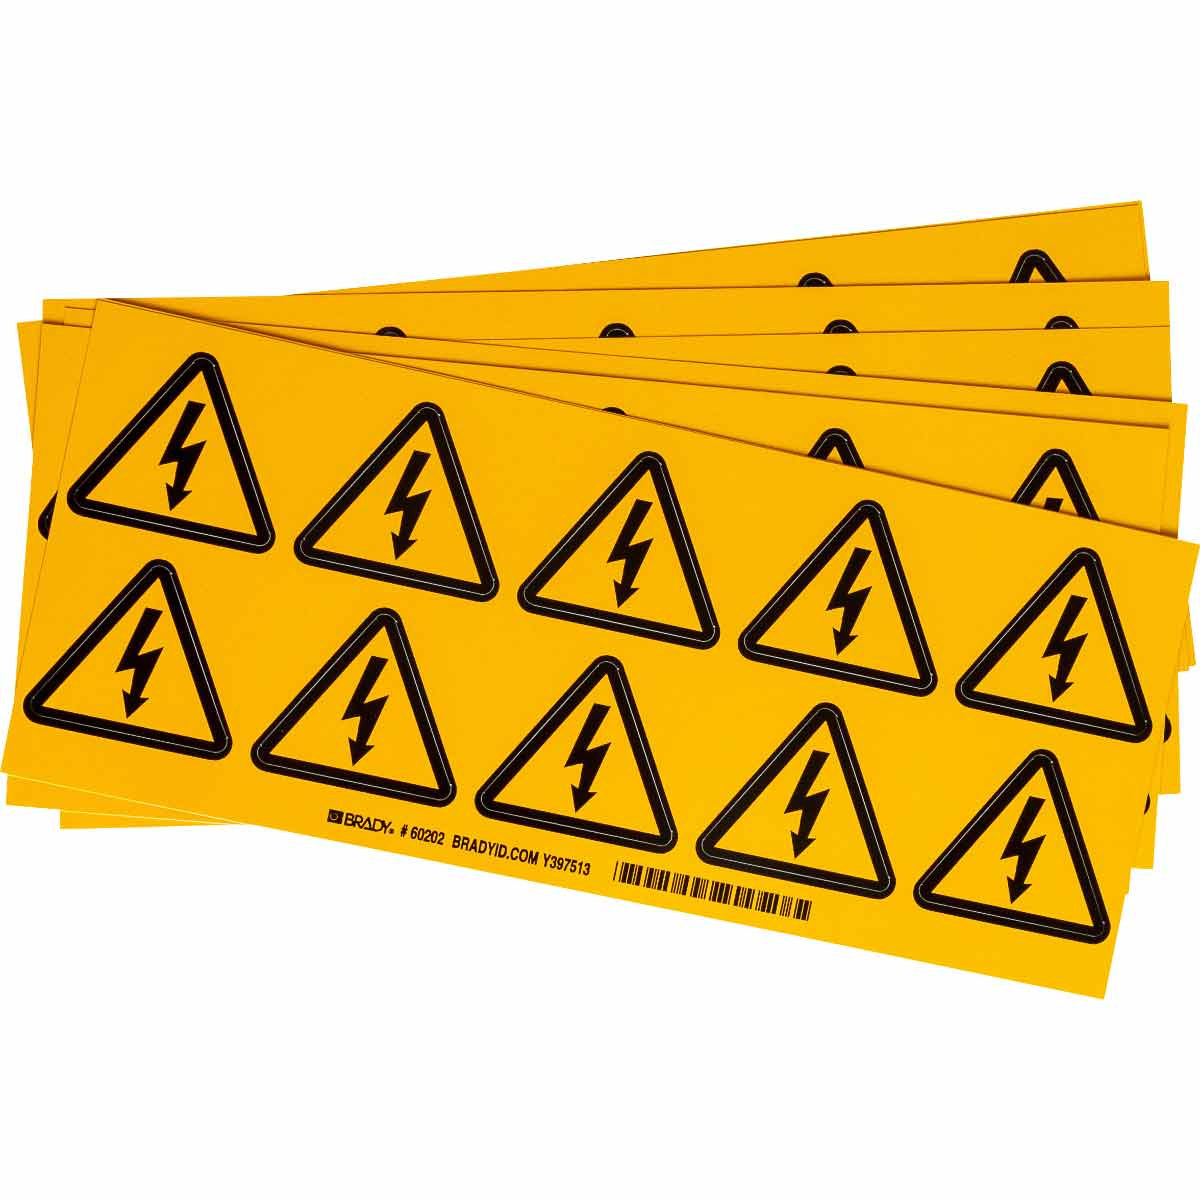 BRADY 60202 WARNING LABELS(PACKAGE OF 10)